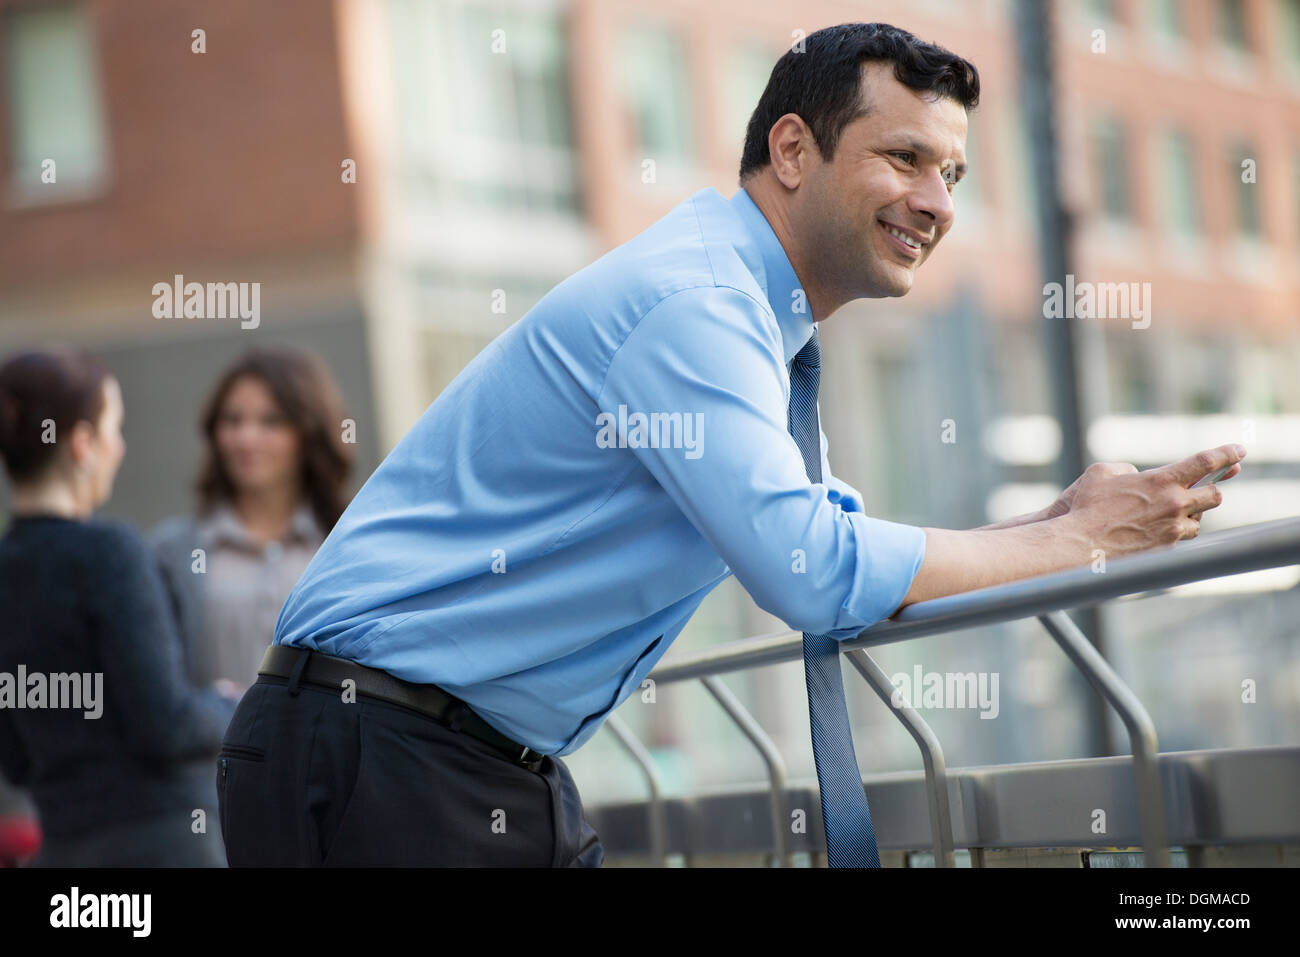 Business people outdoors. A latino businessman in shirt and tie, leaning on a railing. Relaxing. - Stock Image